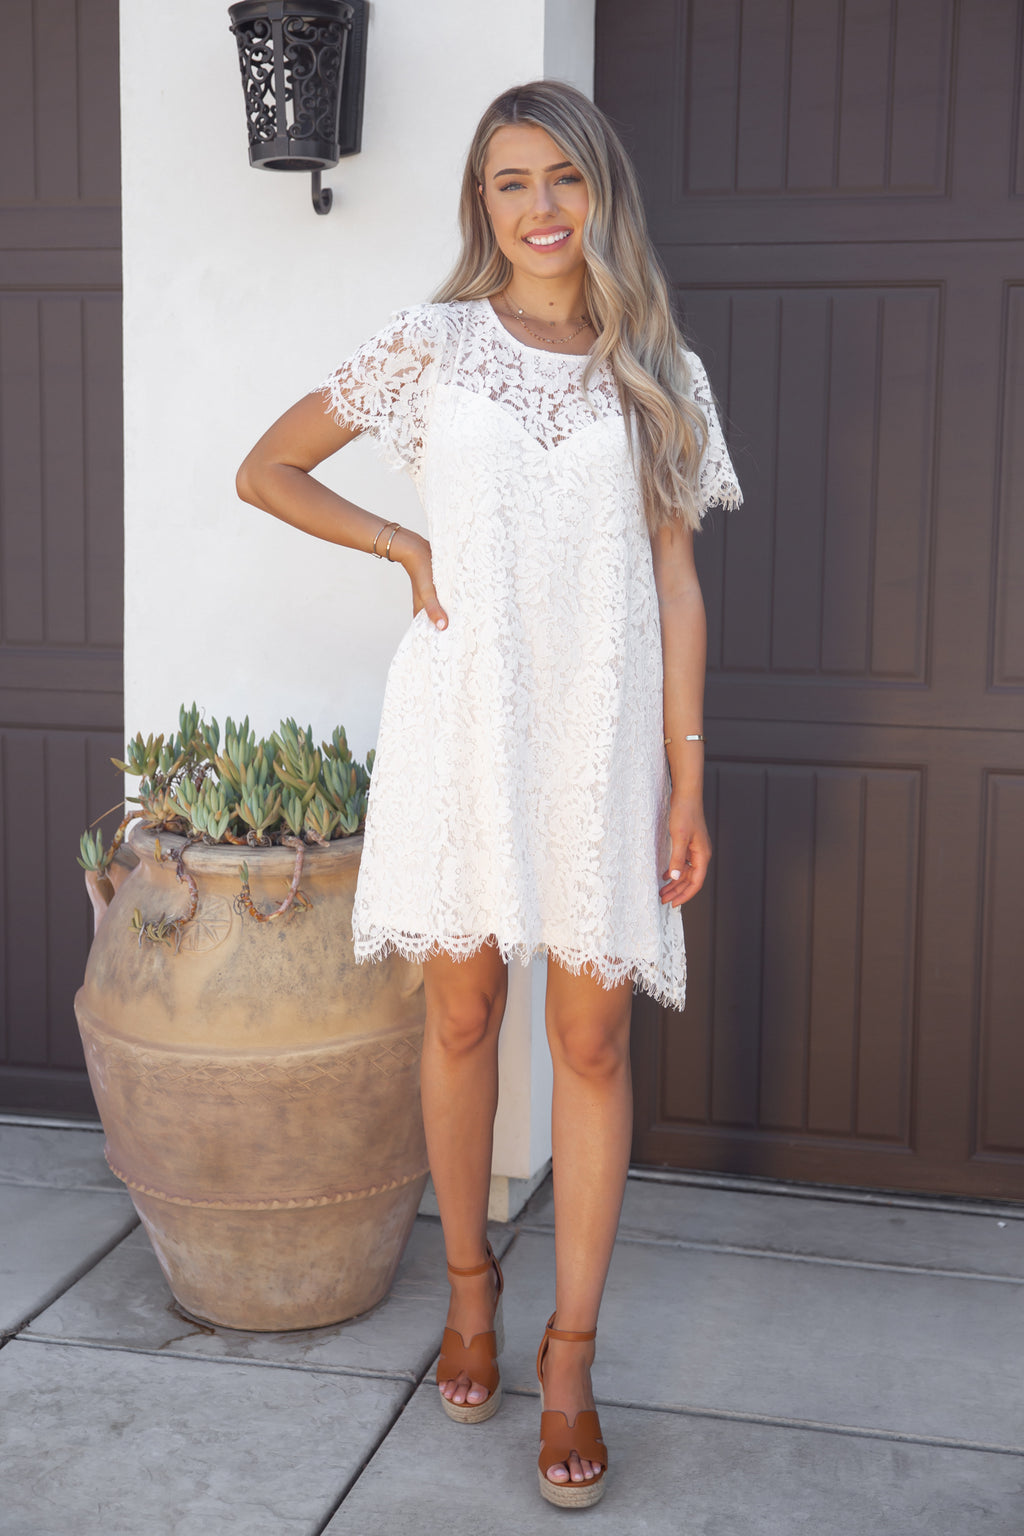 Sweetheart White Lace Dress